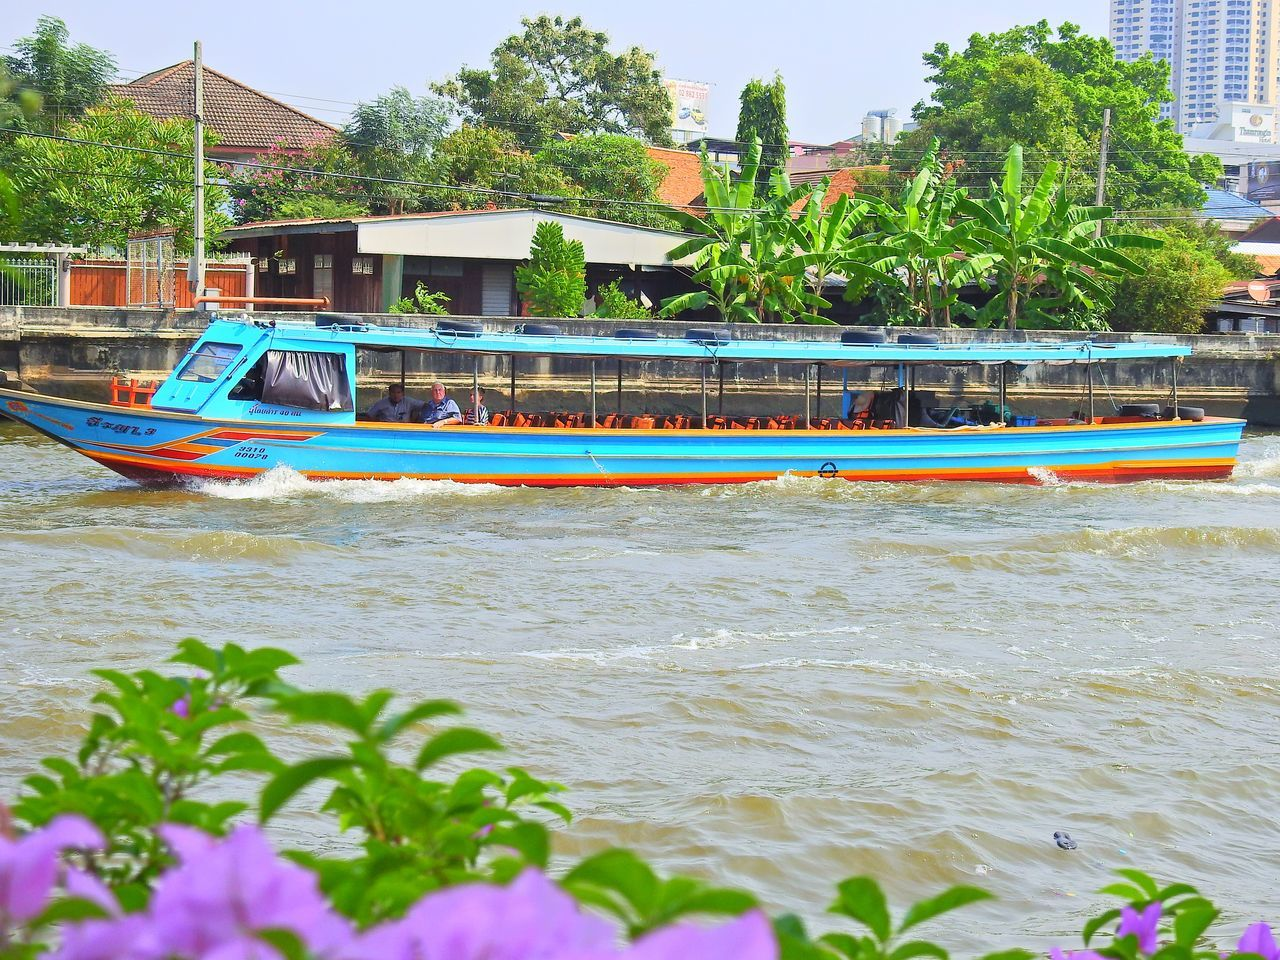 nautical vessel, transportation, mode of transport, boat, tree, architecture, day, water, built structure, moored, building exterior, no people, outdoors, nature, sea, sky